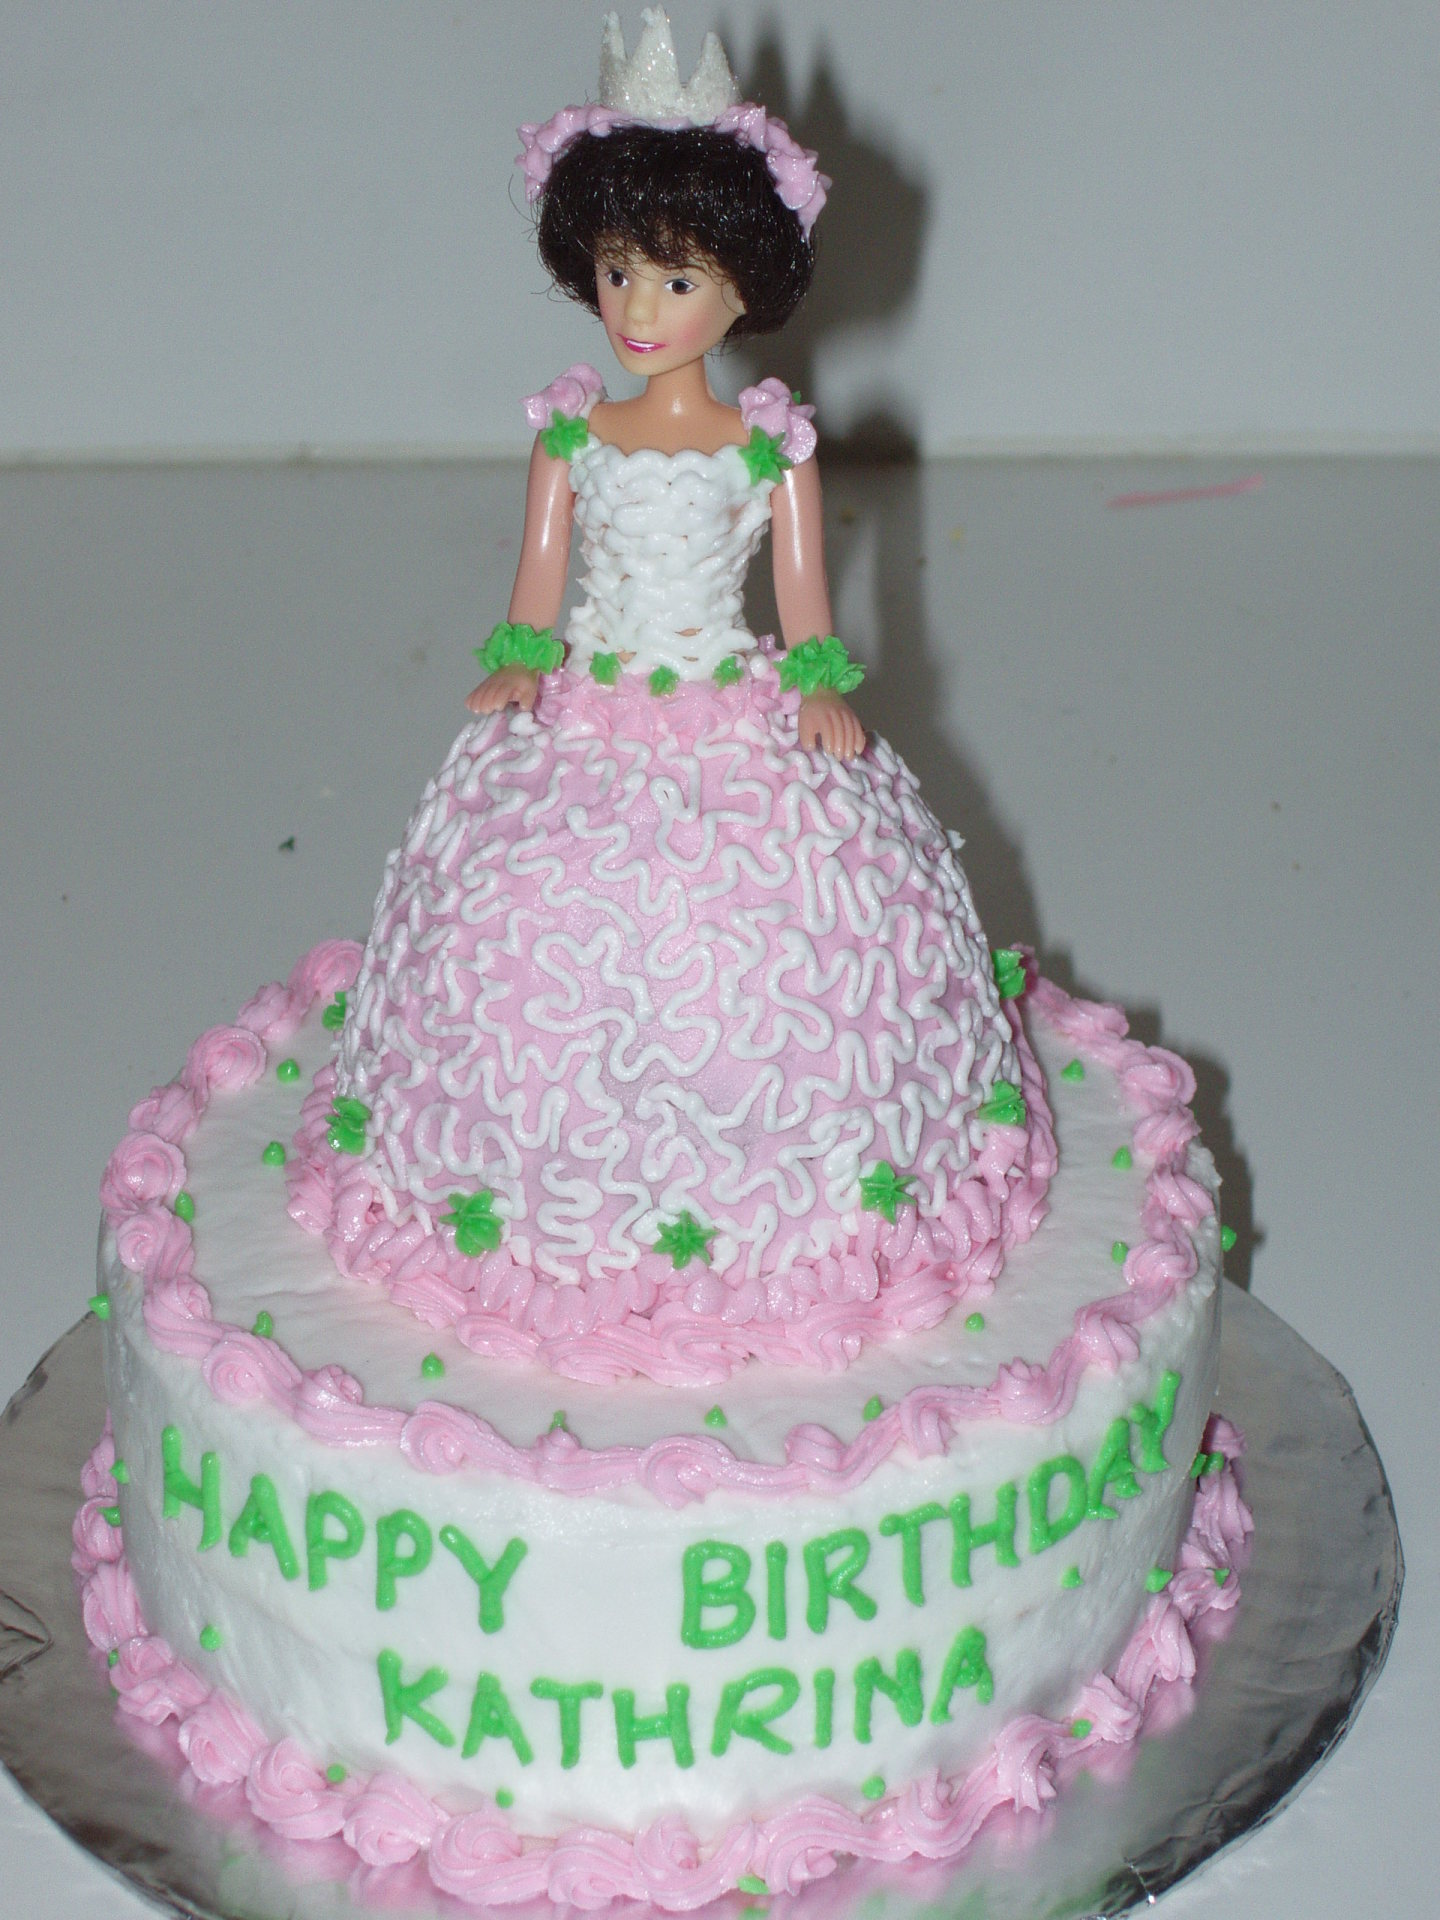 Simple doll cake on the round cake.